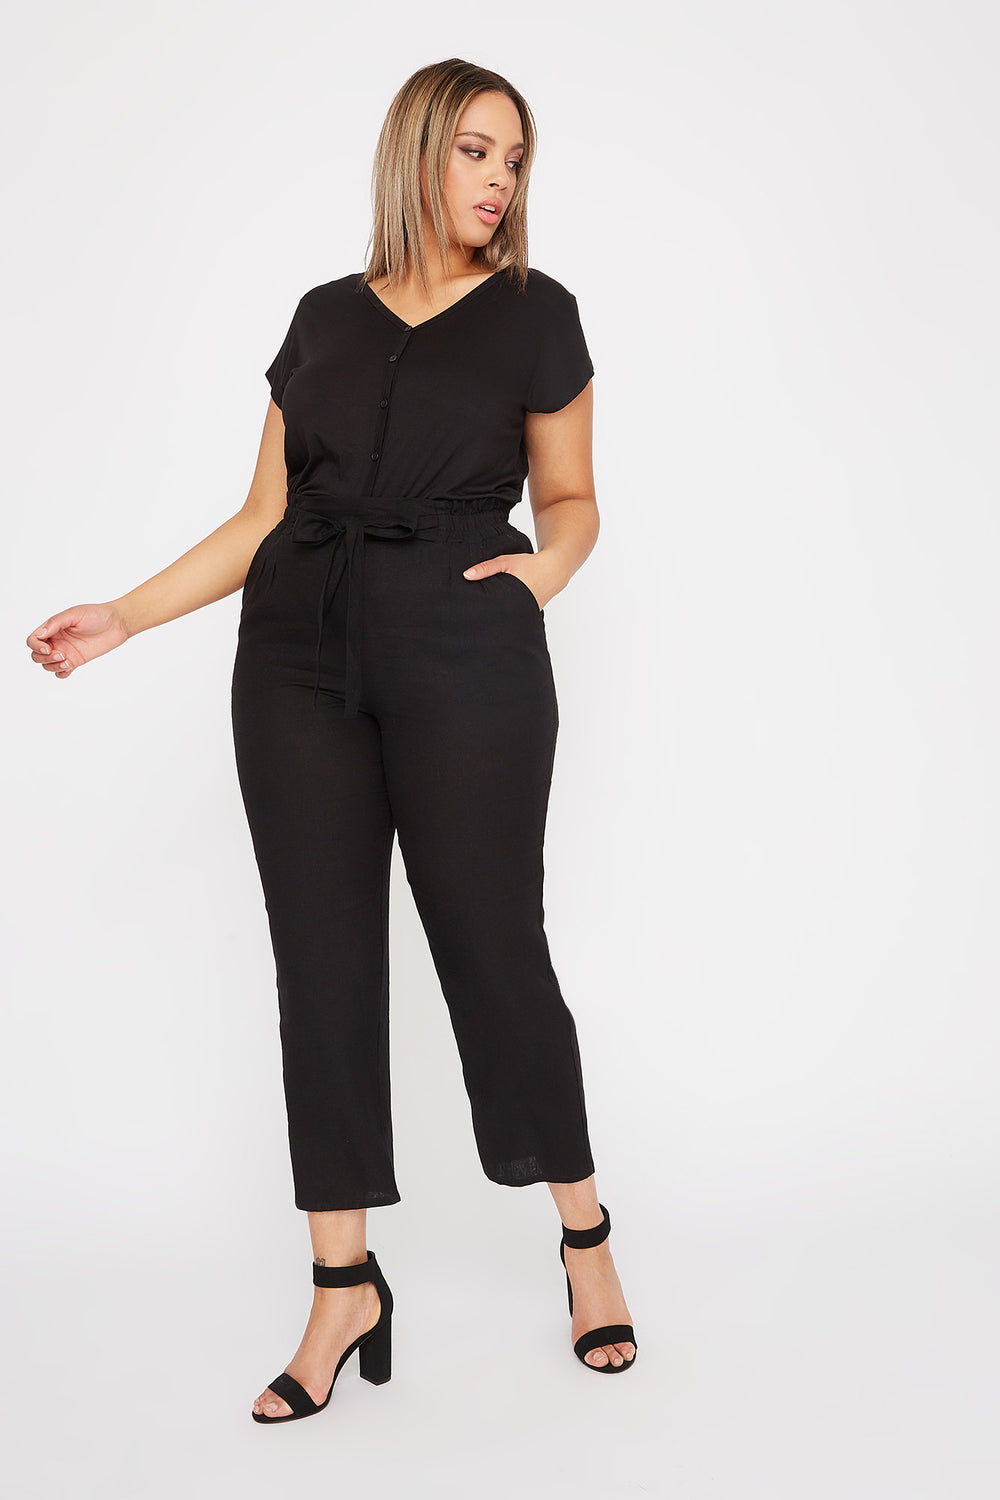 Plus Size Linen High-Rise Tie Pant Black